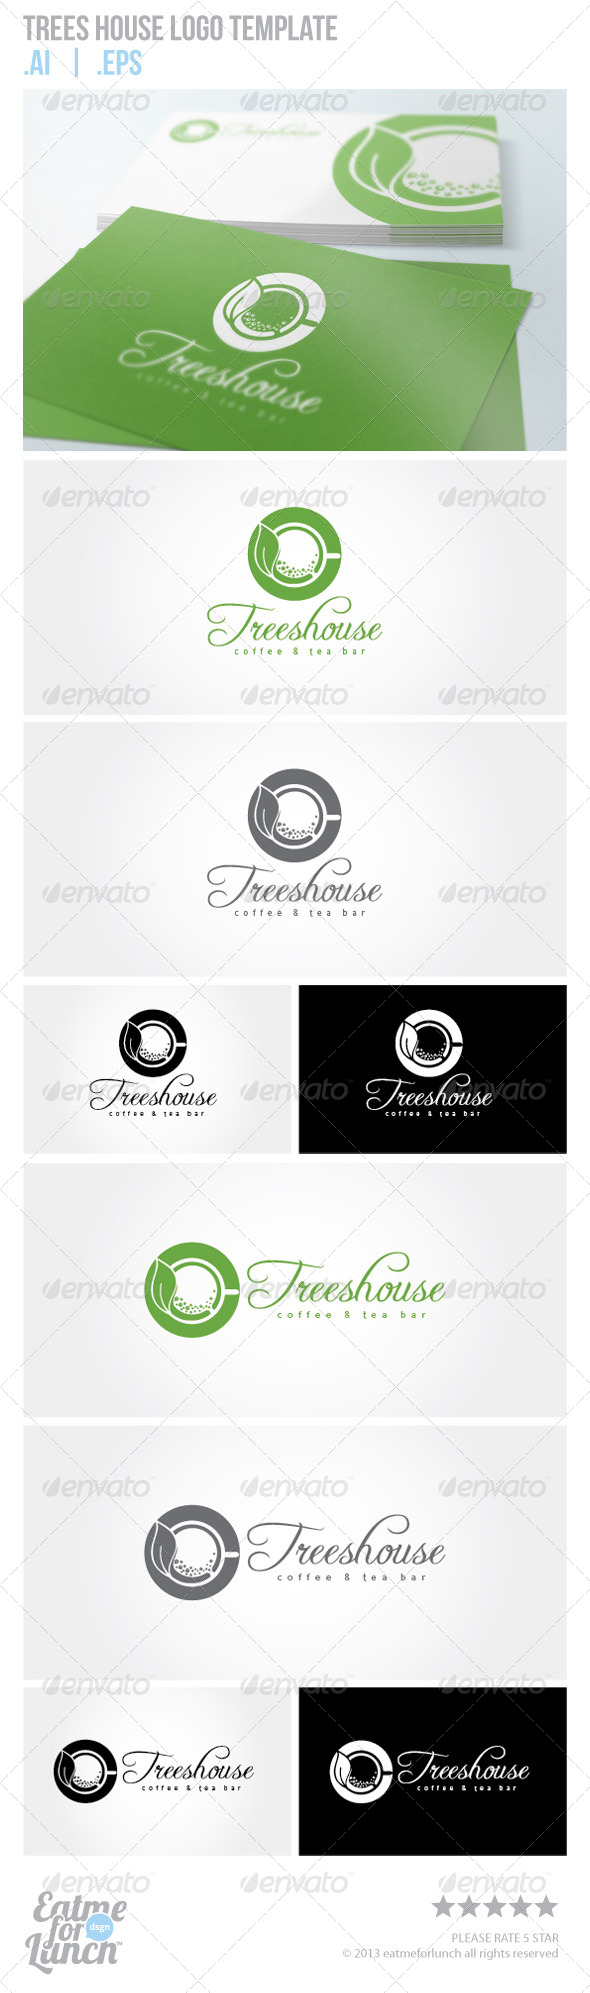 Trees House Green Coffee and Tea Logo Template  - Food Logo Templates